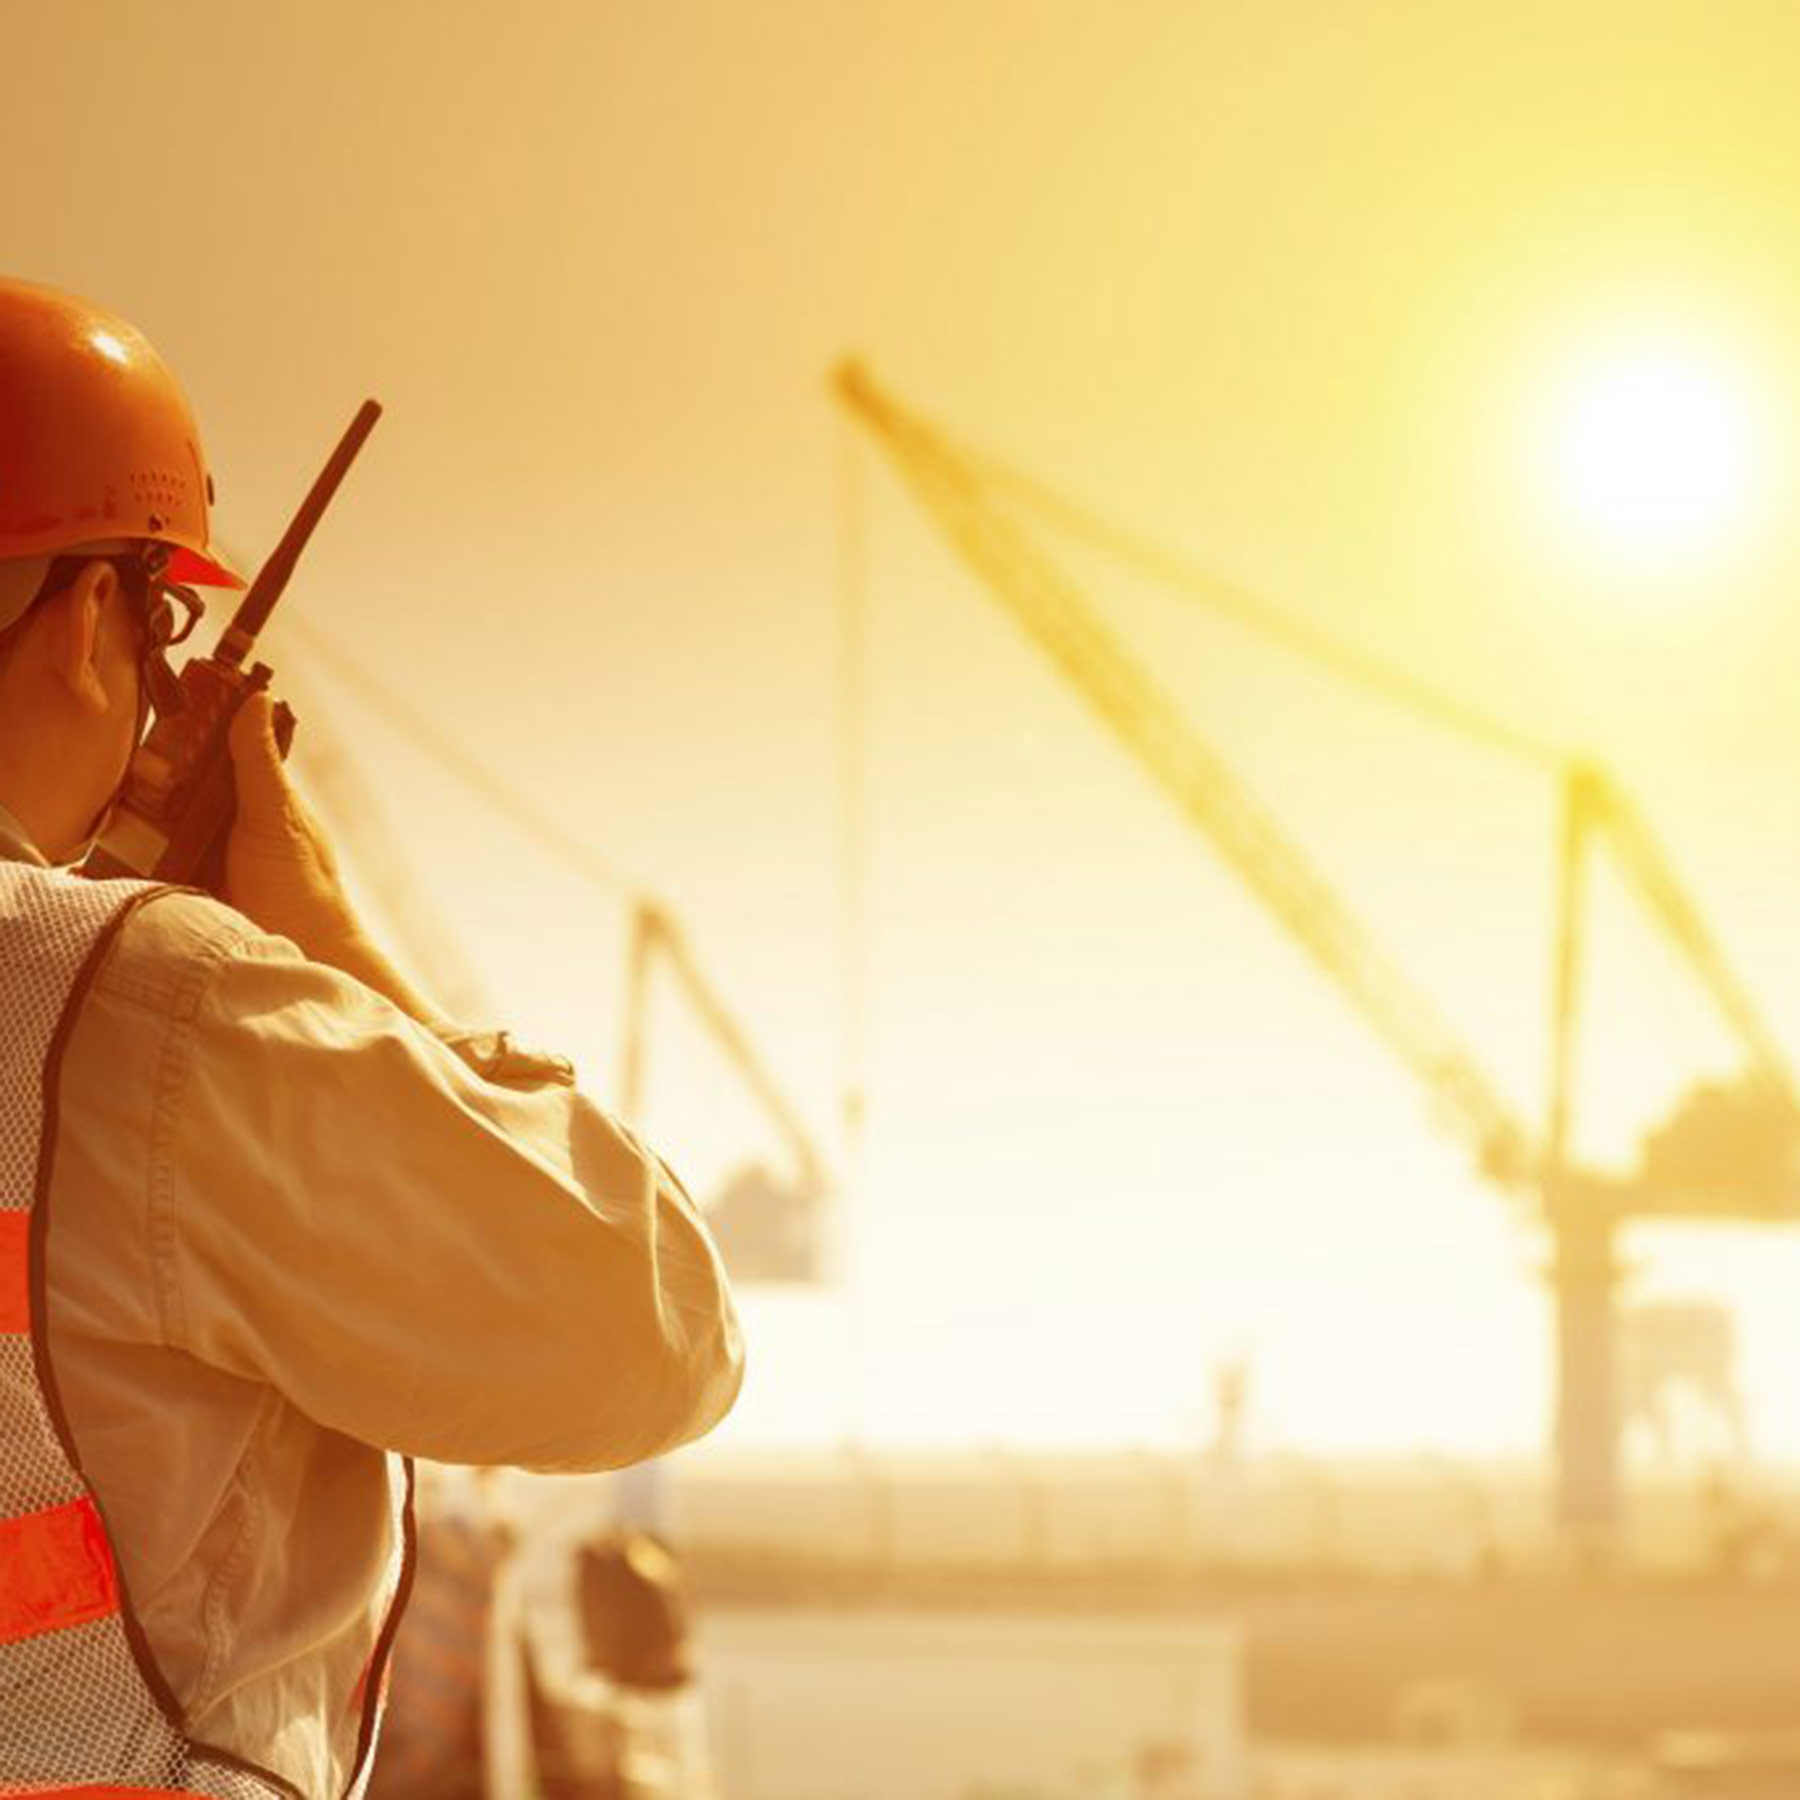 Protecting Workers from High-Heat in Construction